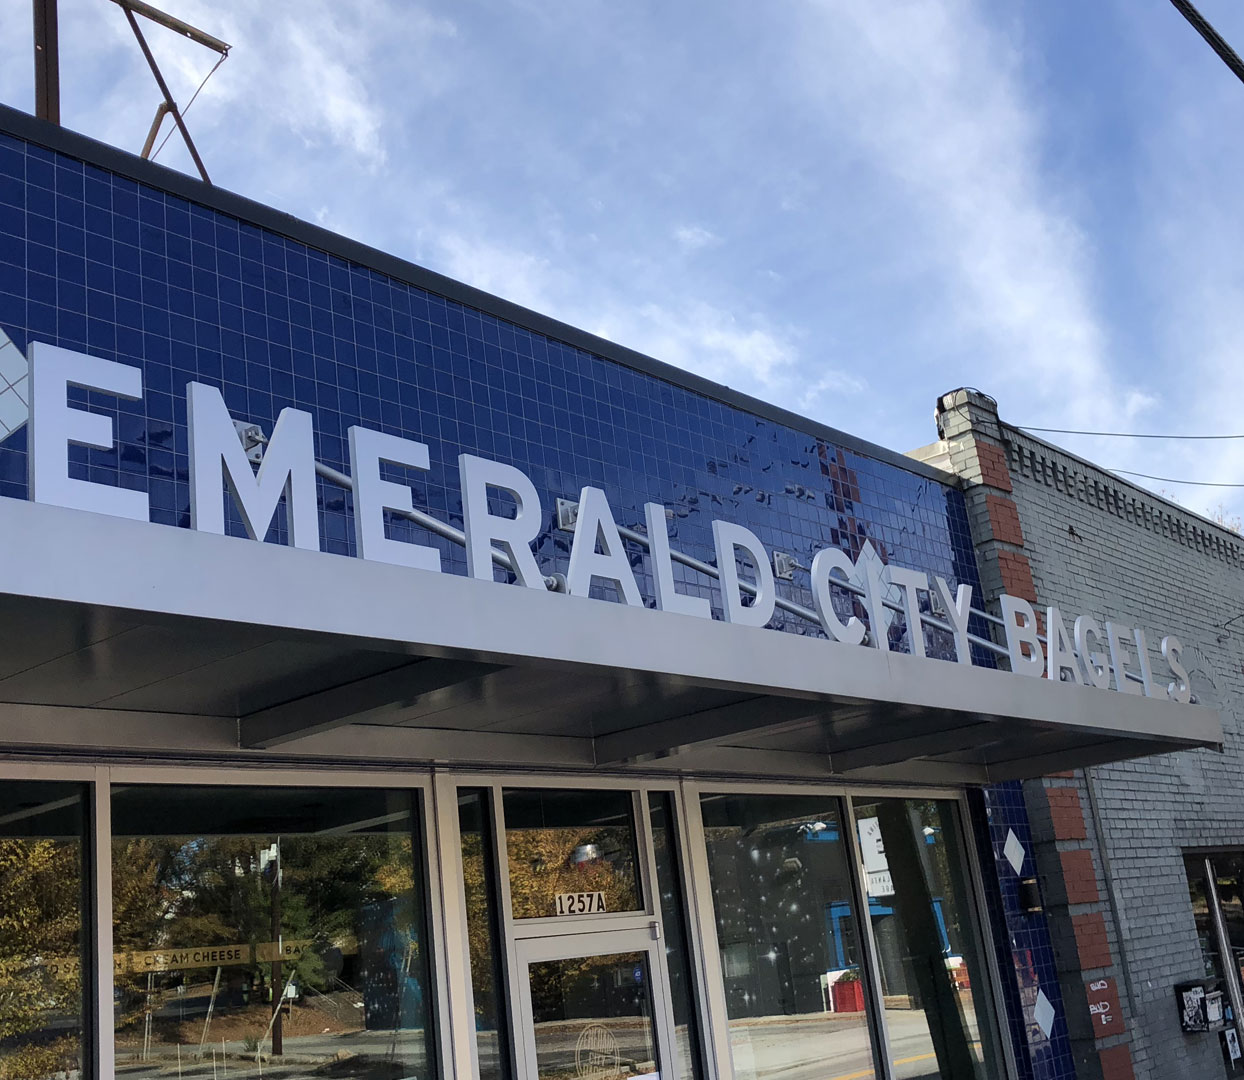 Emerald City Bagels store signage